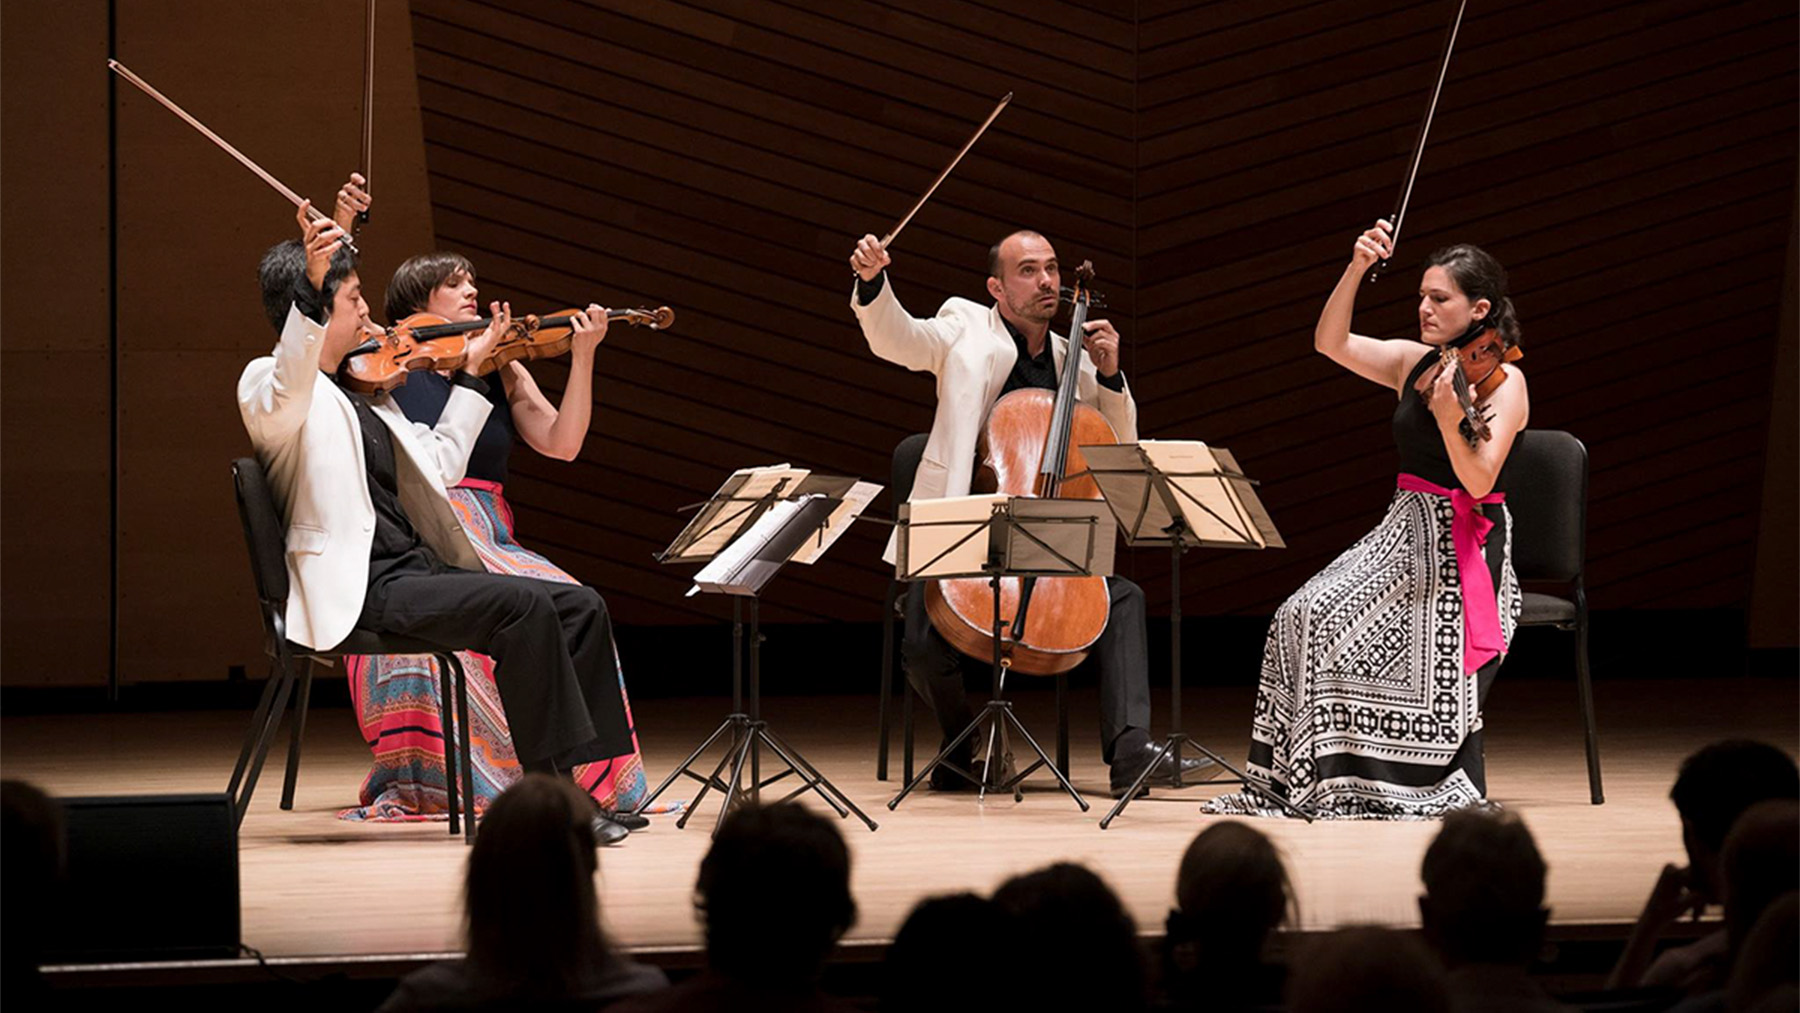 """""""Chaconne/Labyrinth,"""" reflects the experience of living during a pandemic. The piece will have its world premiere April 3 with a virtual performance by the Jupiter String Quartet (pictured performing)"""